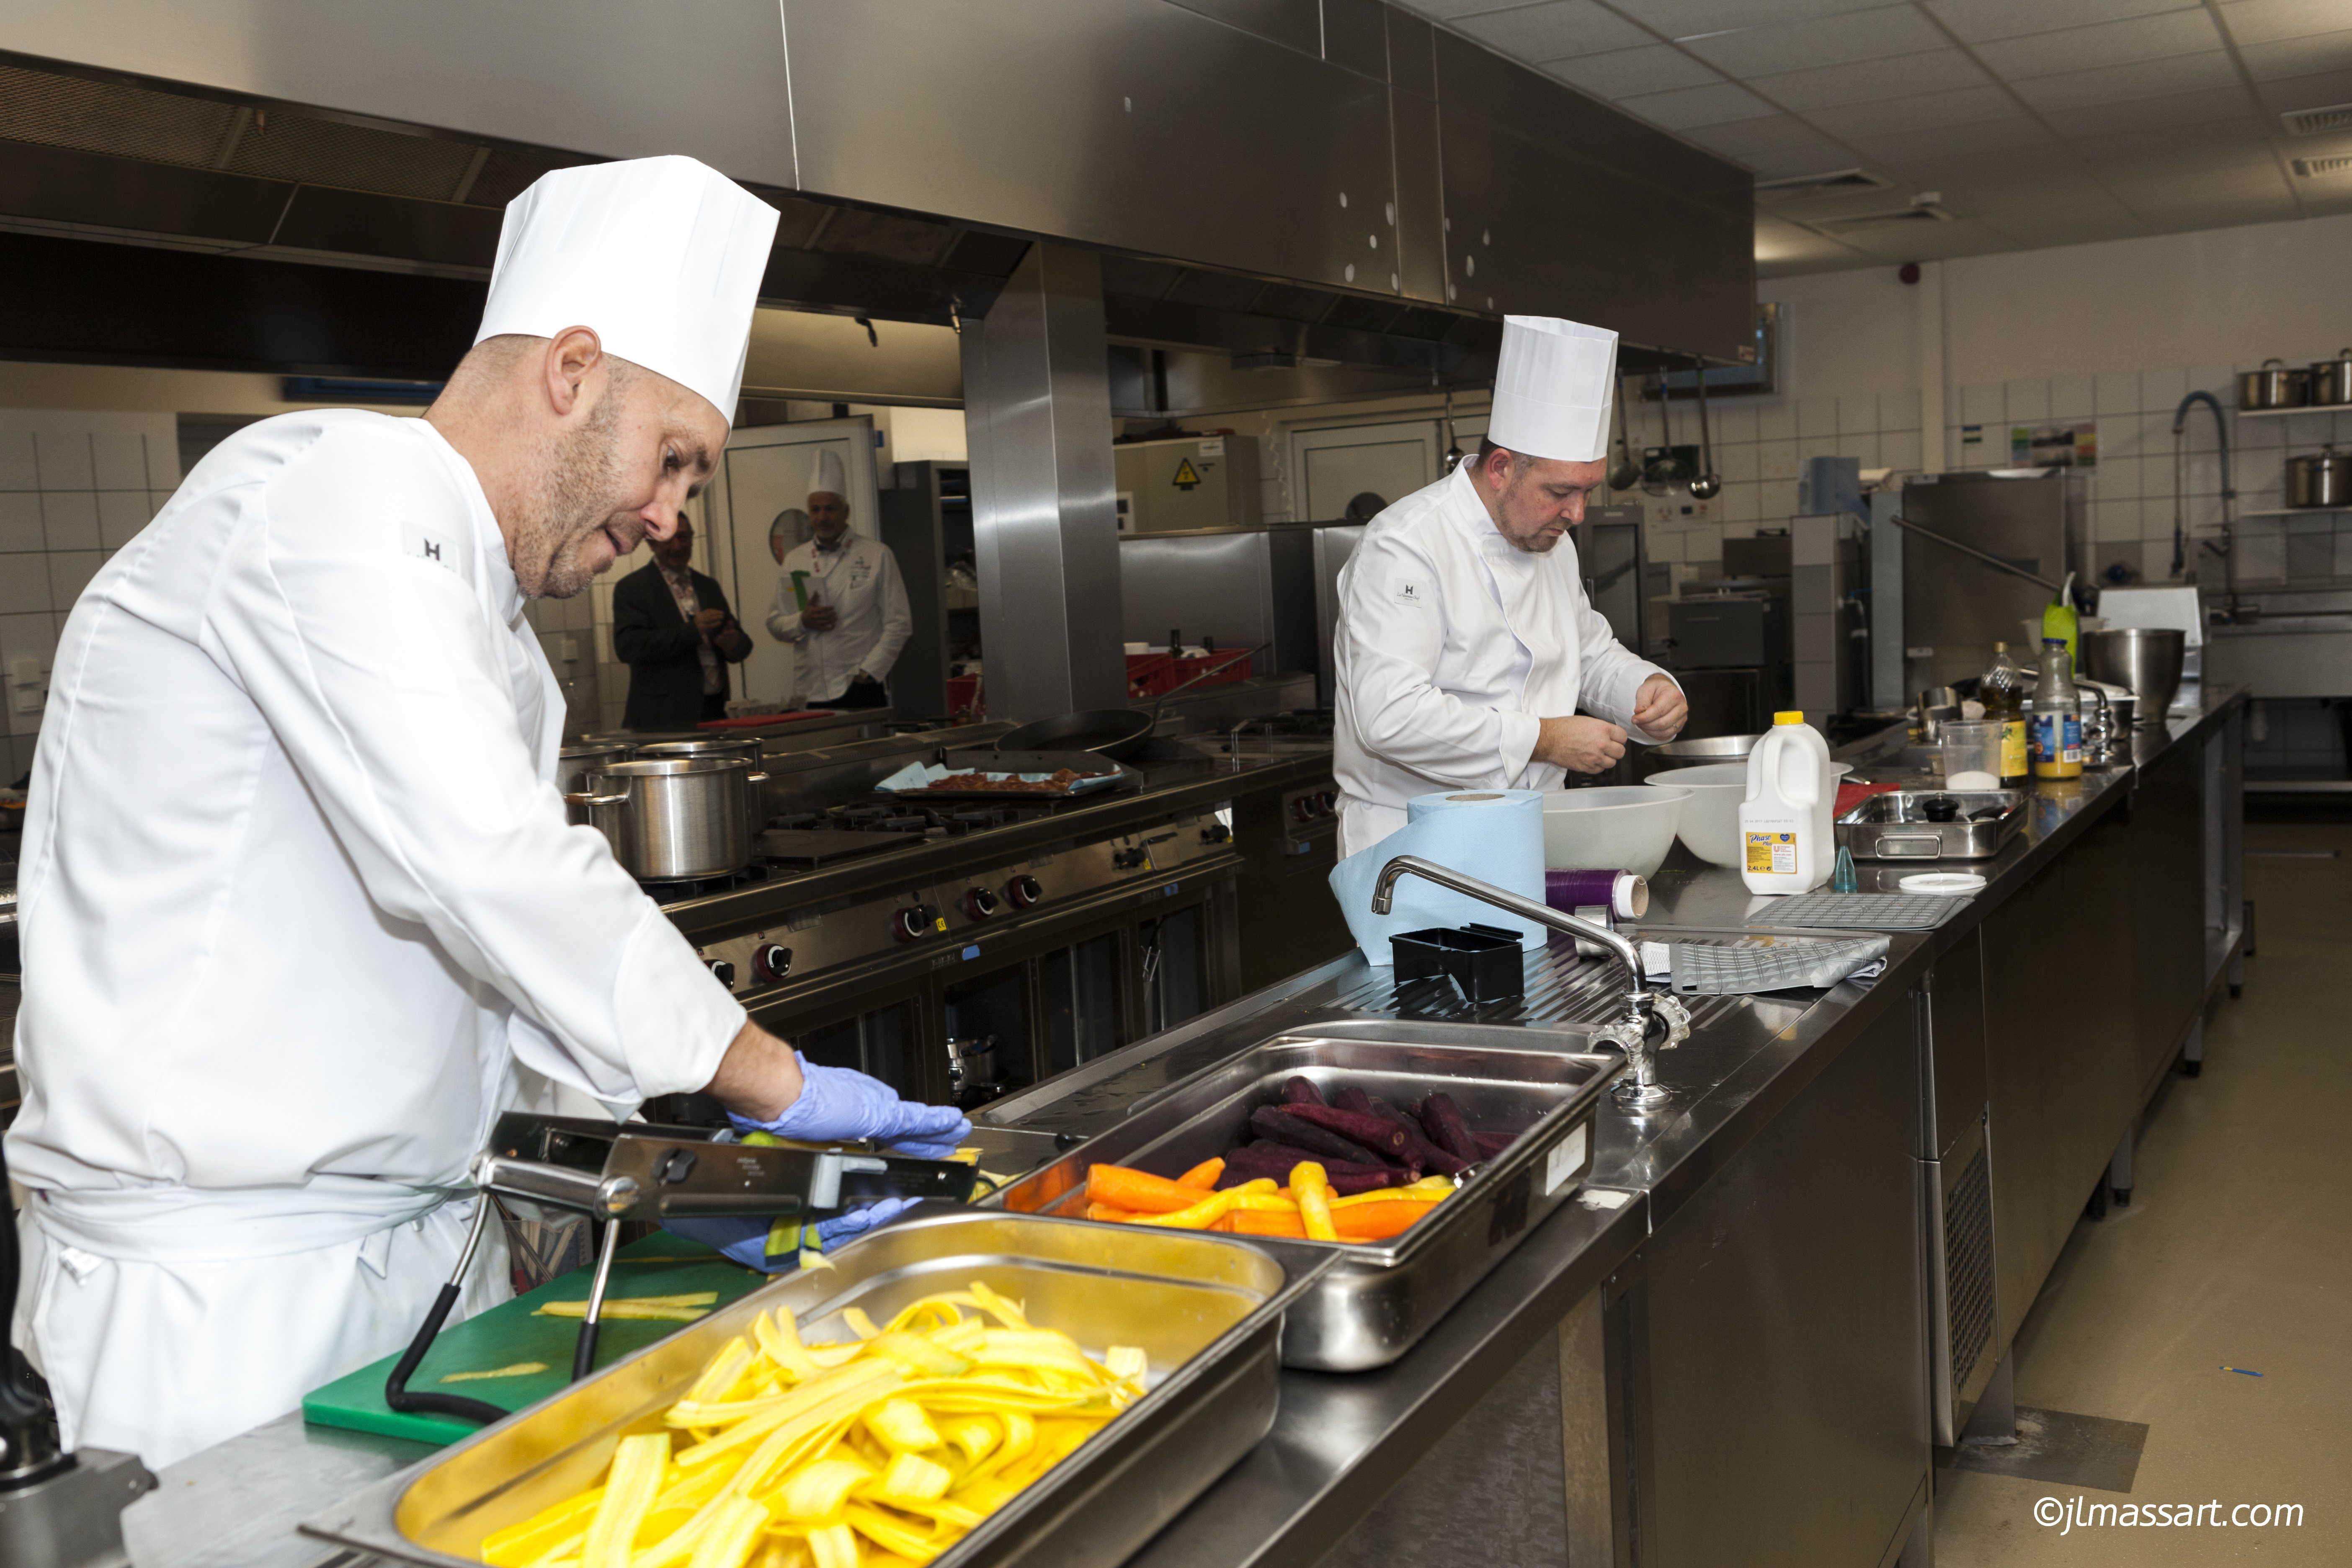 Concours cuisines collectives1